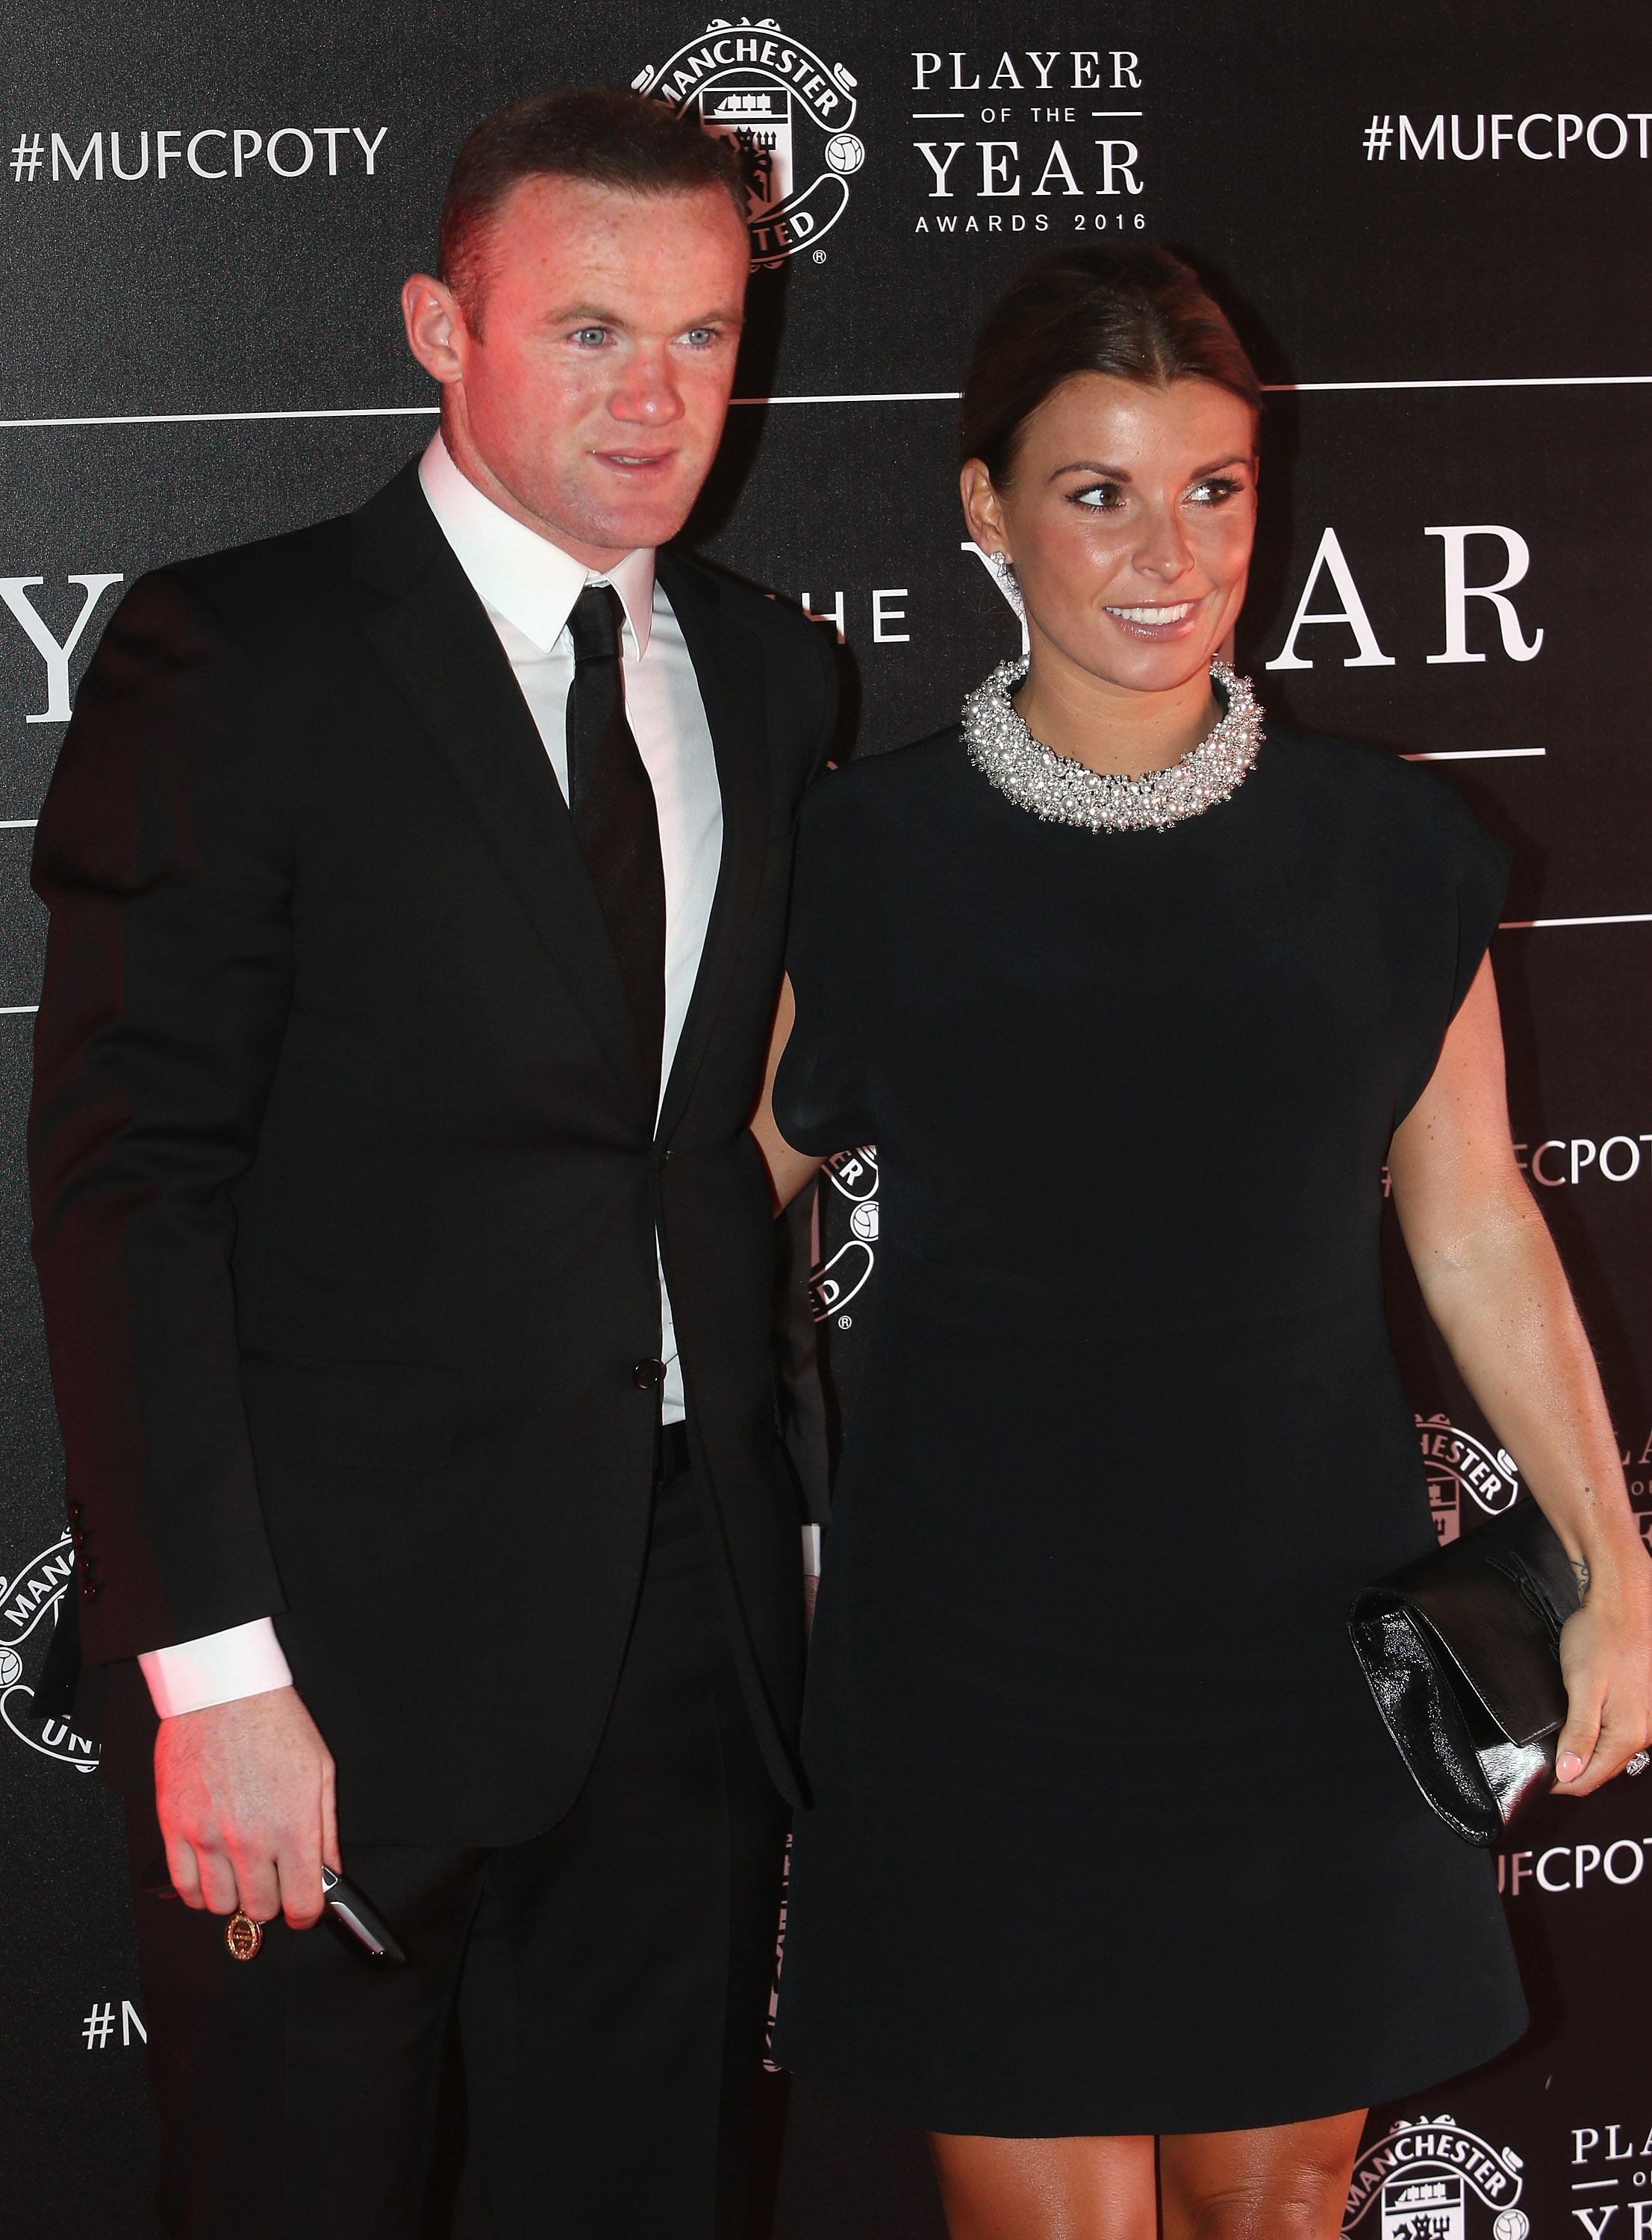 Coleen Rooney settles into Stateside life with a sightseeing tour of Washington